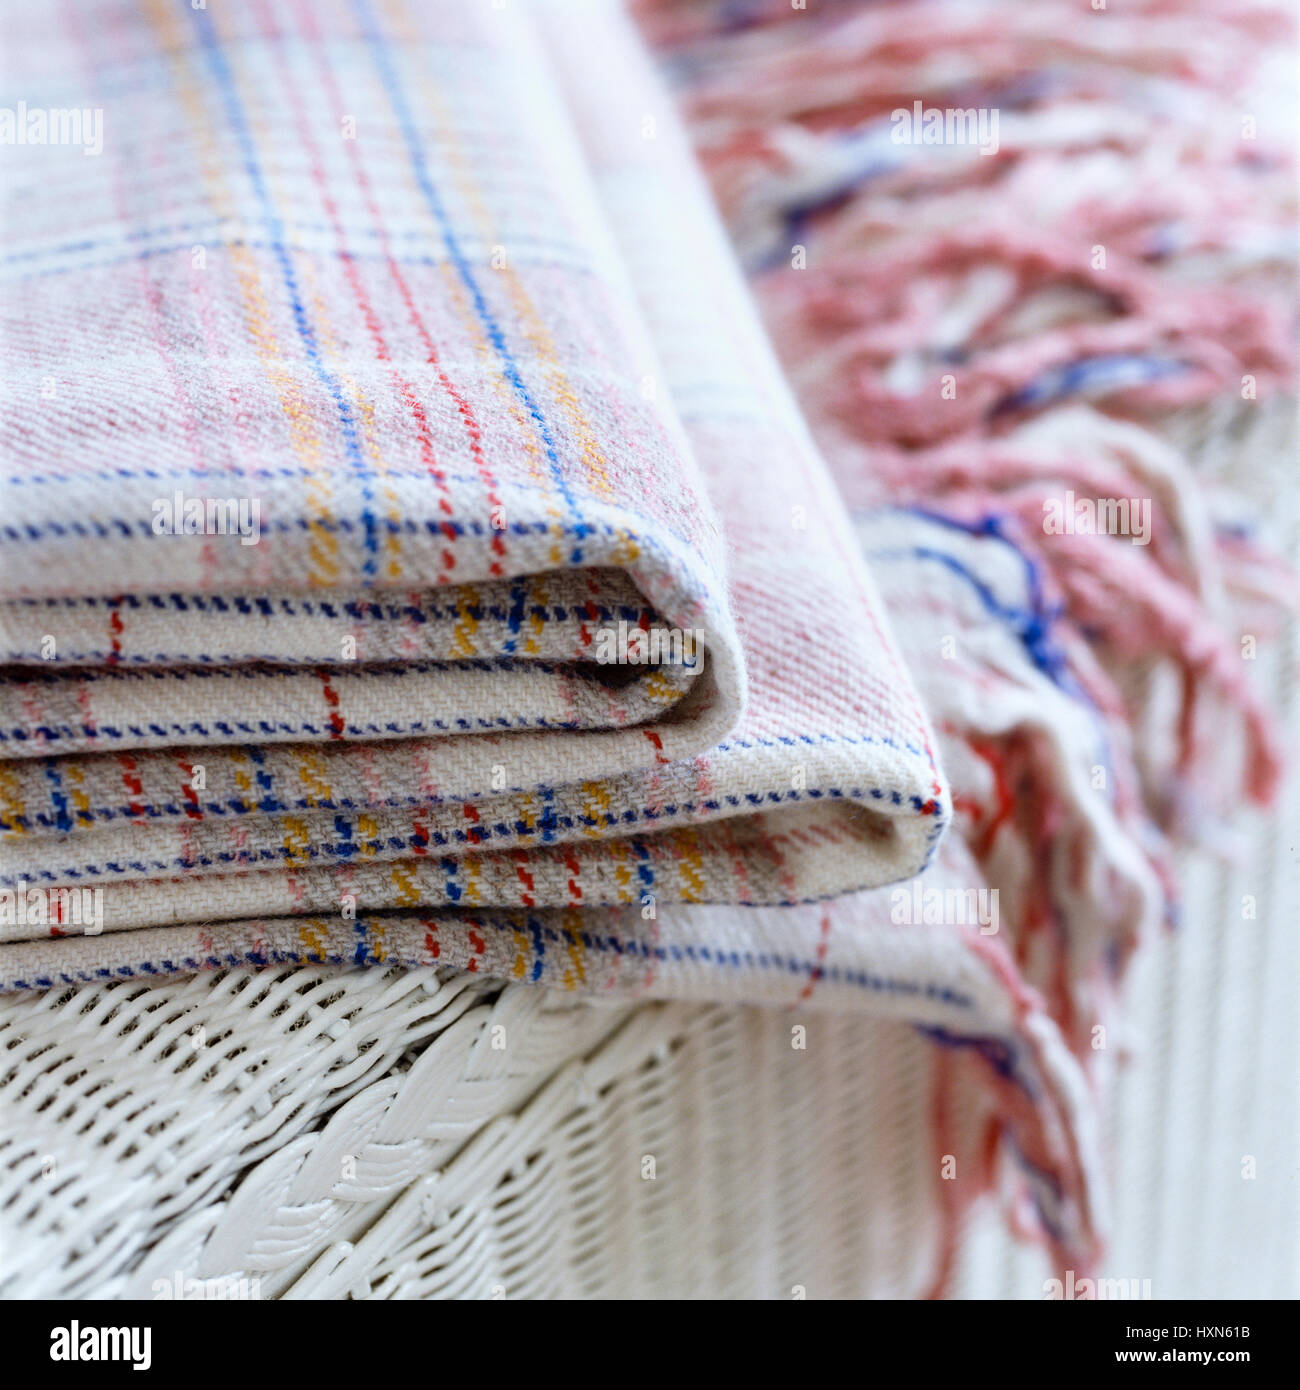 Checked pattern blanket. - Stock Image